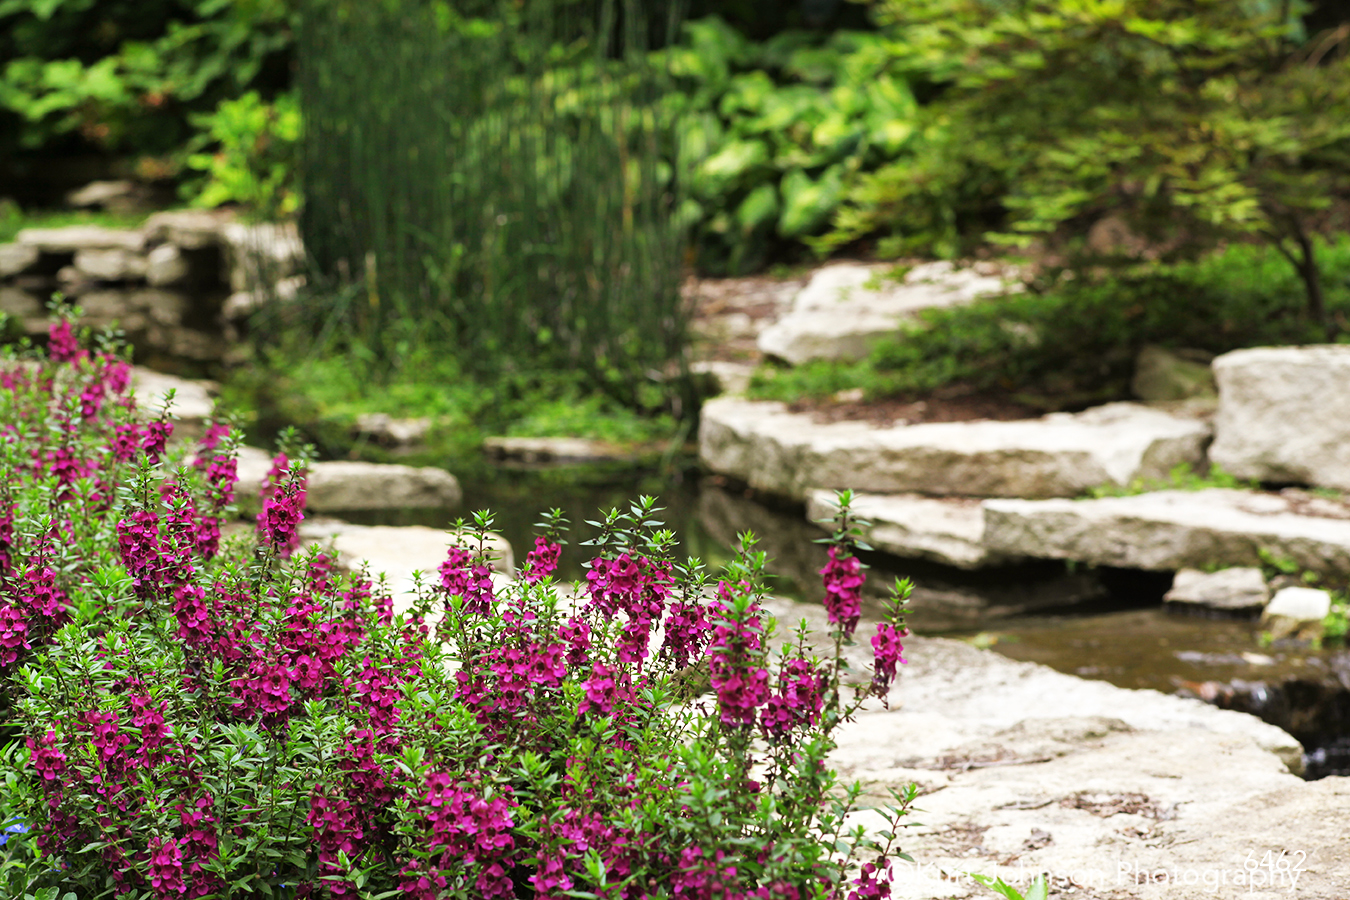 landscape waterscape stream flowers purple rocks green grasses garden